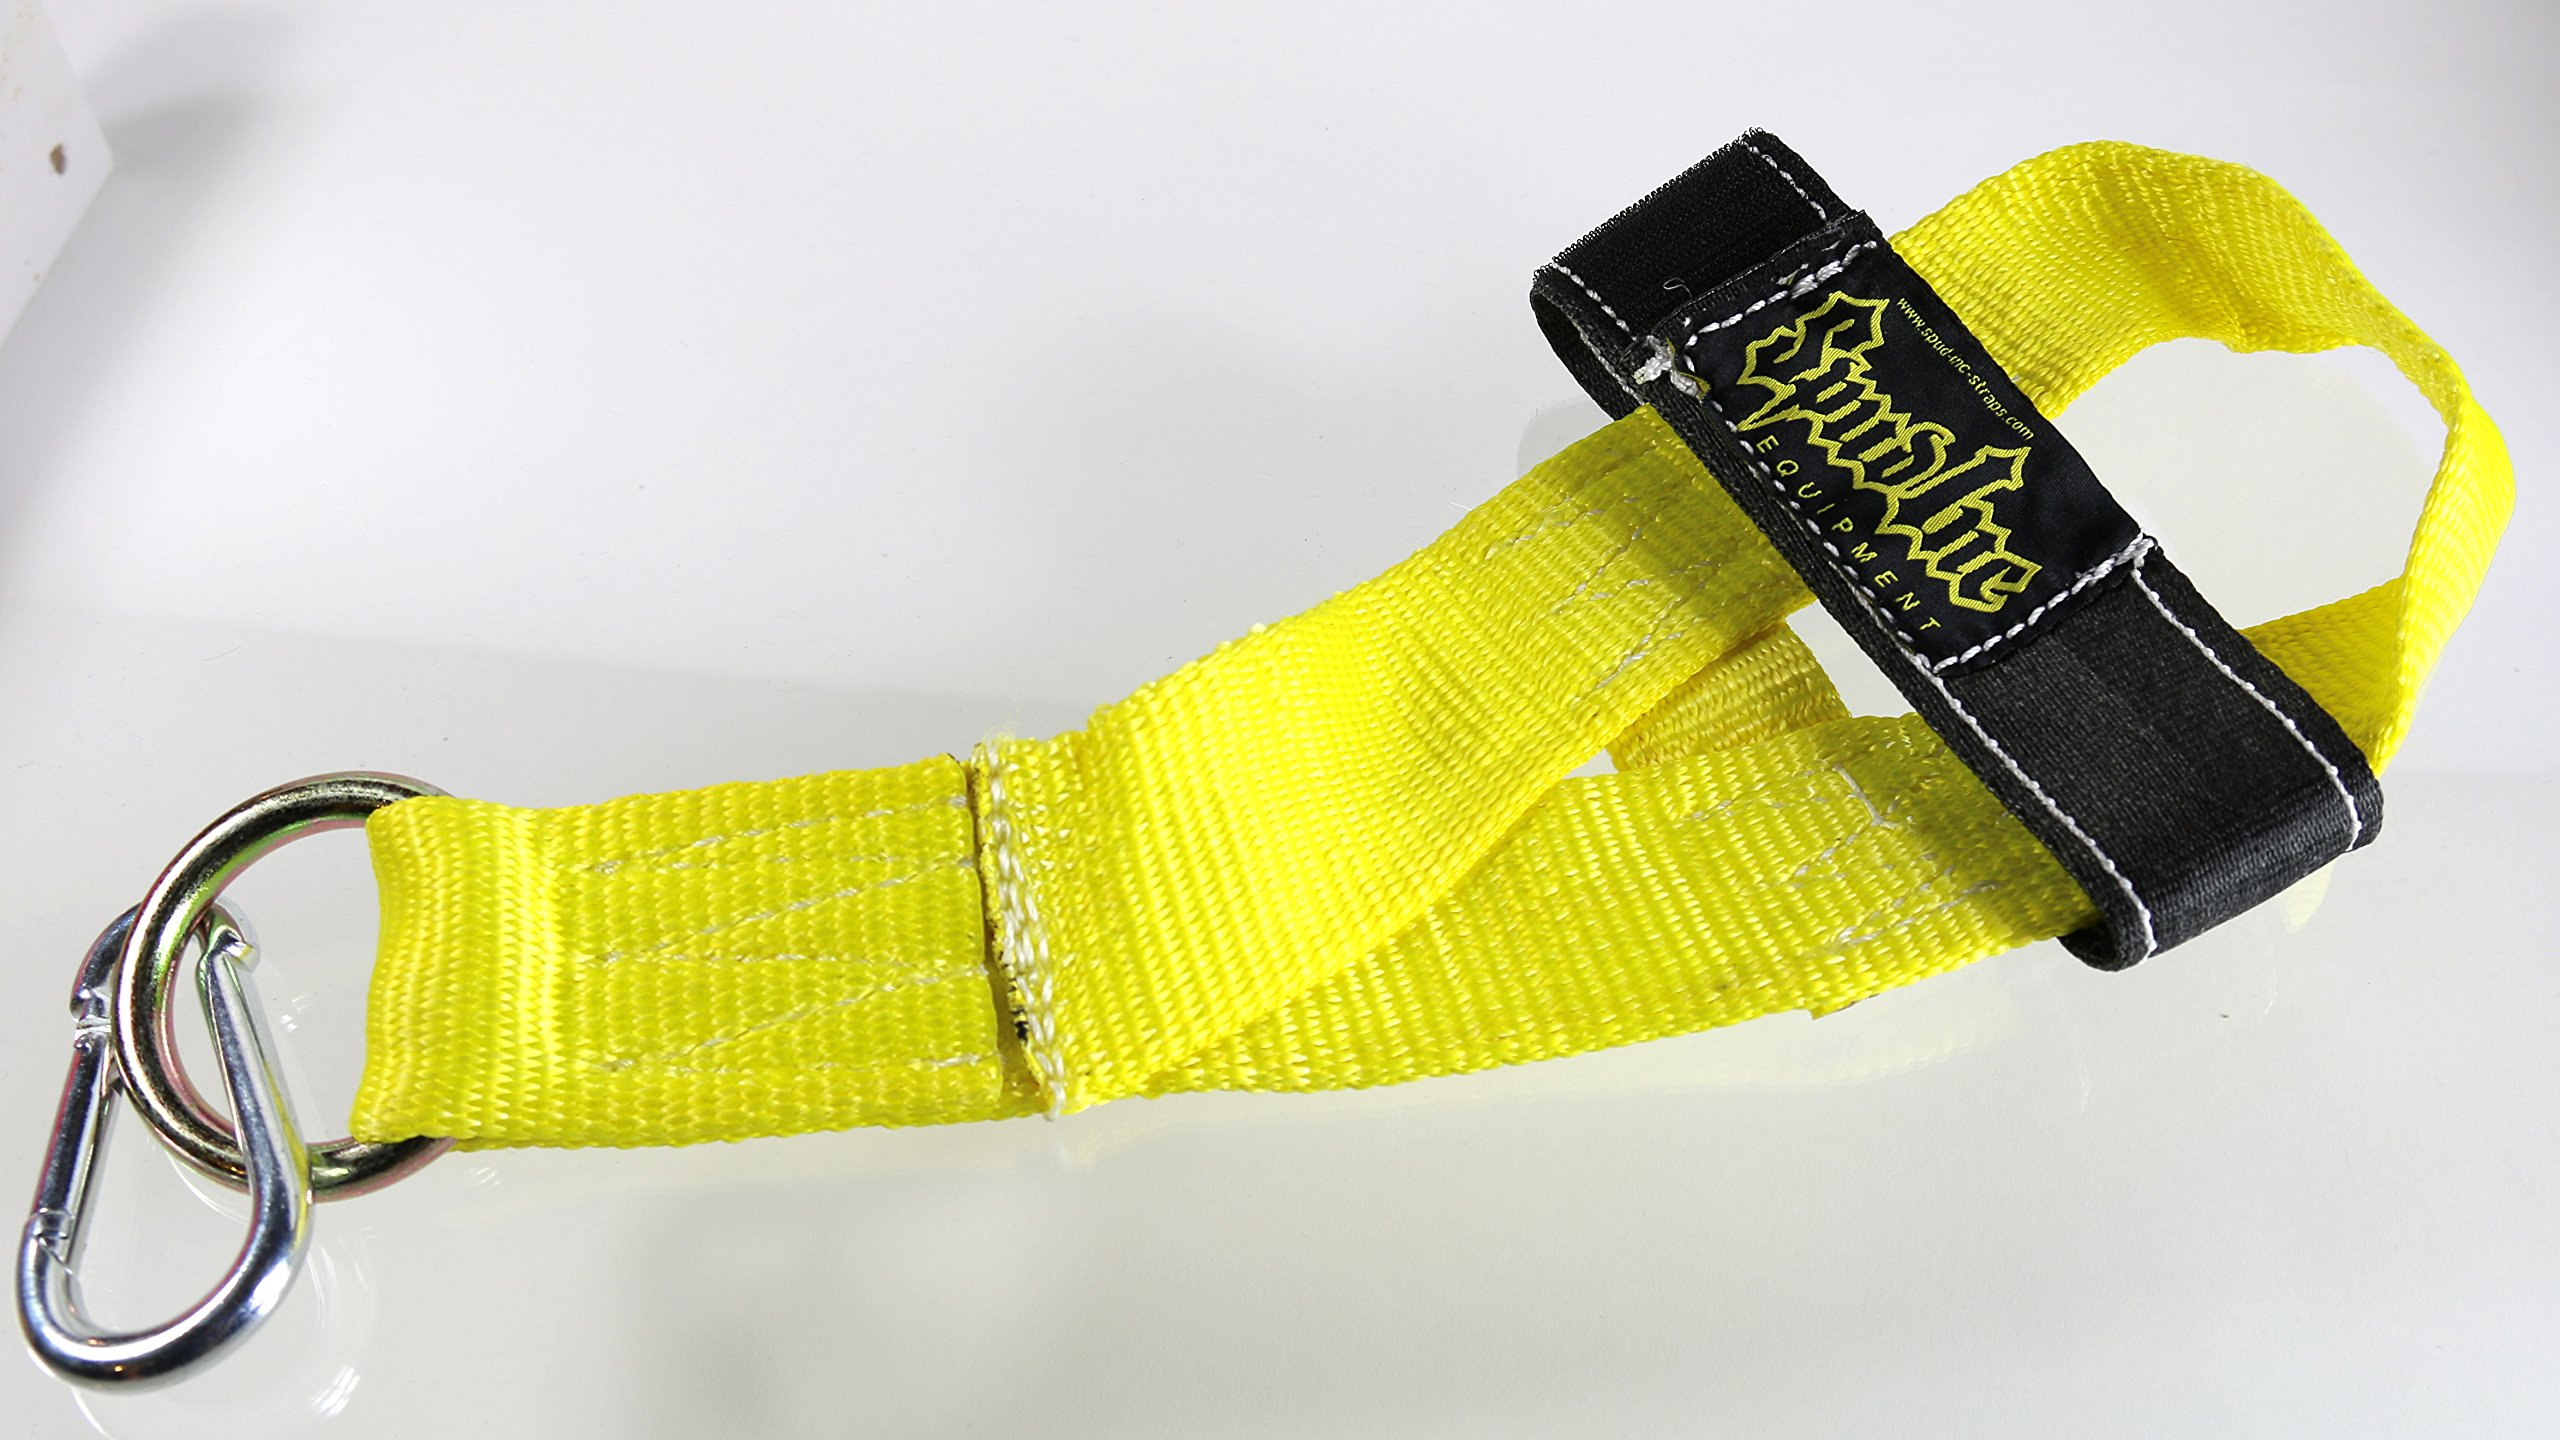 Spud Hamstinger Deluxe for Isolation Hamstring Curls - Use With Cable Machine, Bands or Chains (YELLOW)